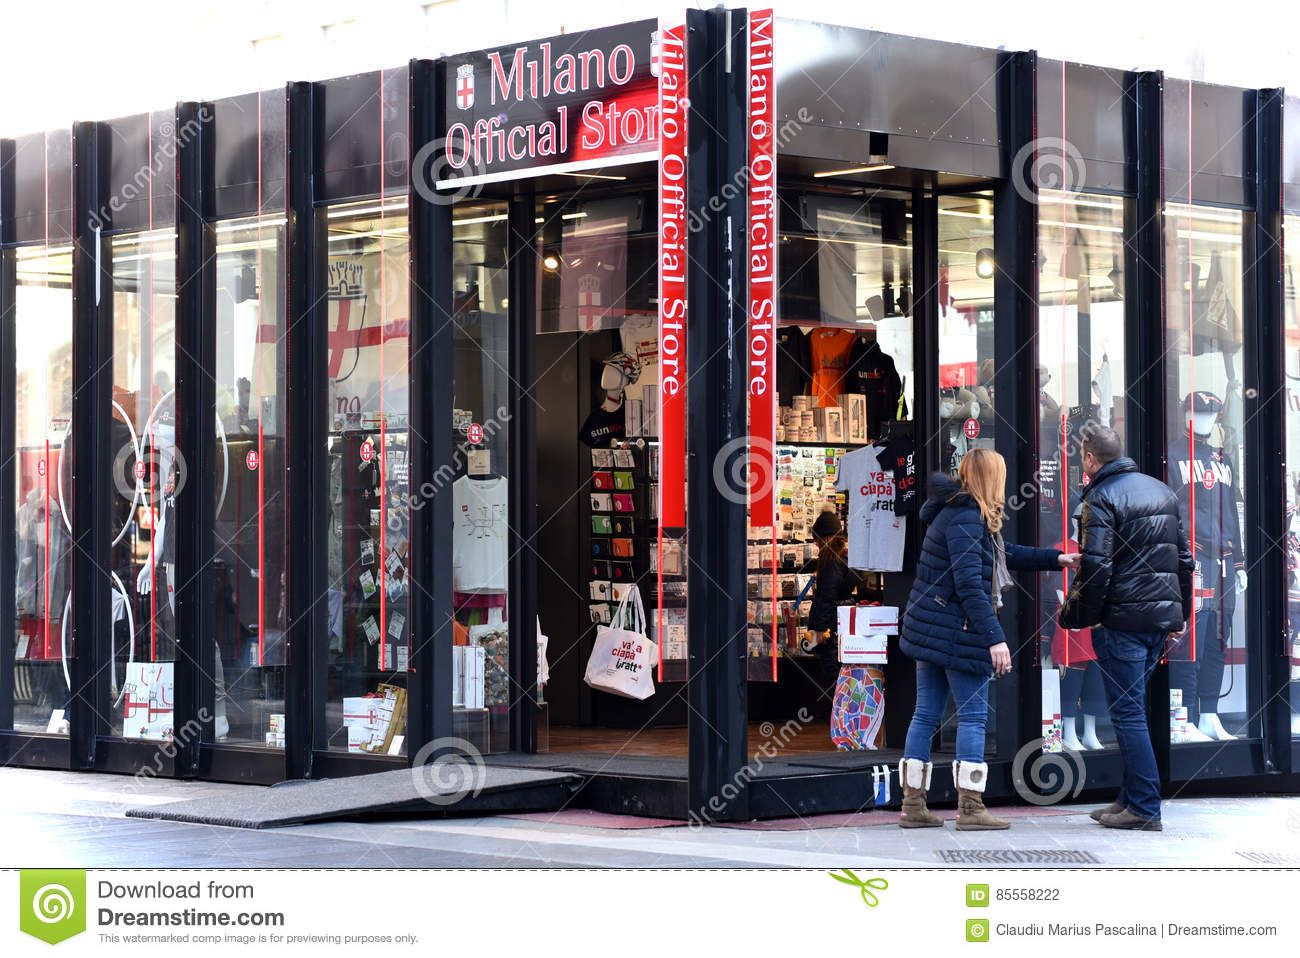 A C Milan Official Store